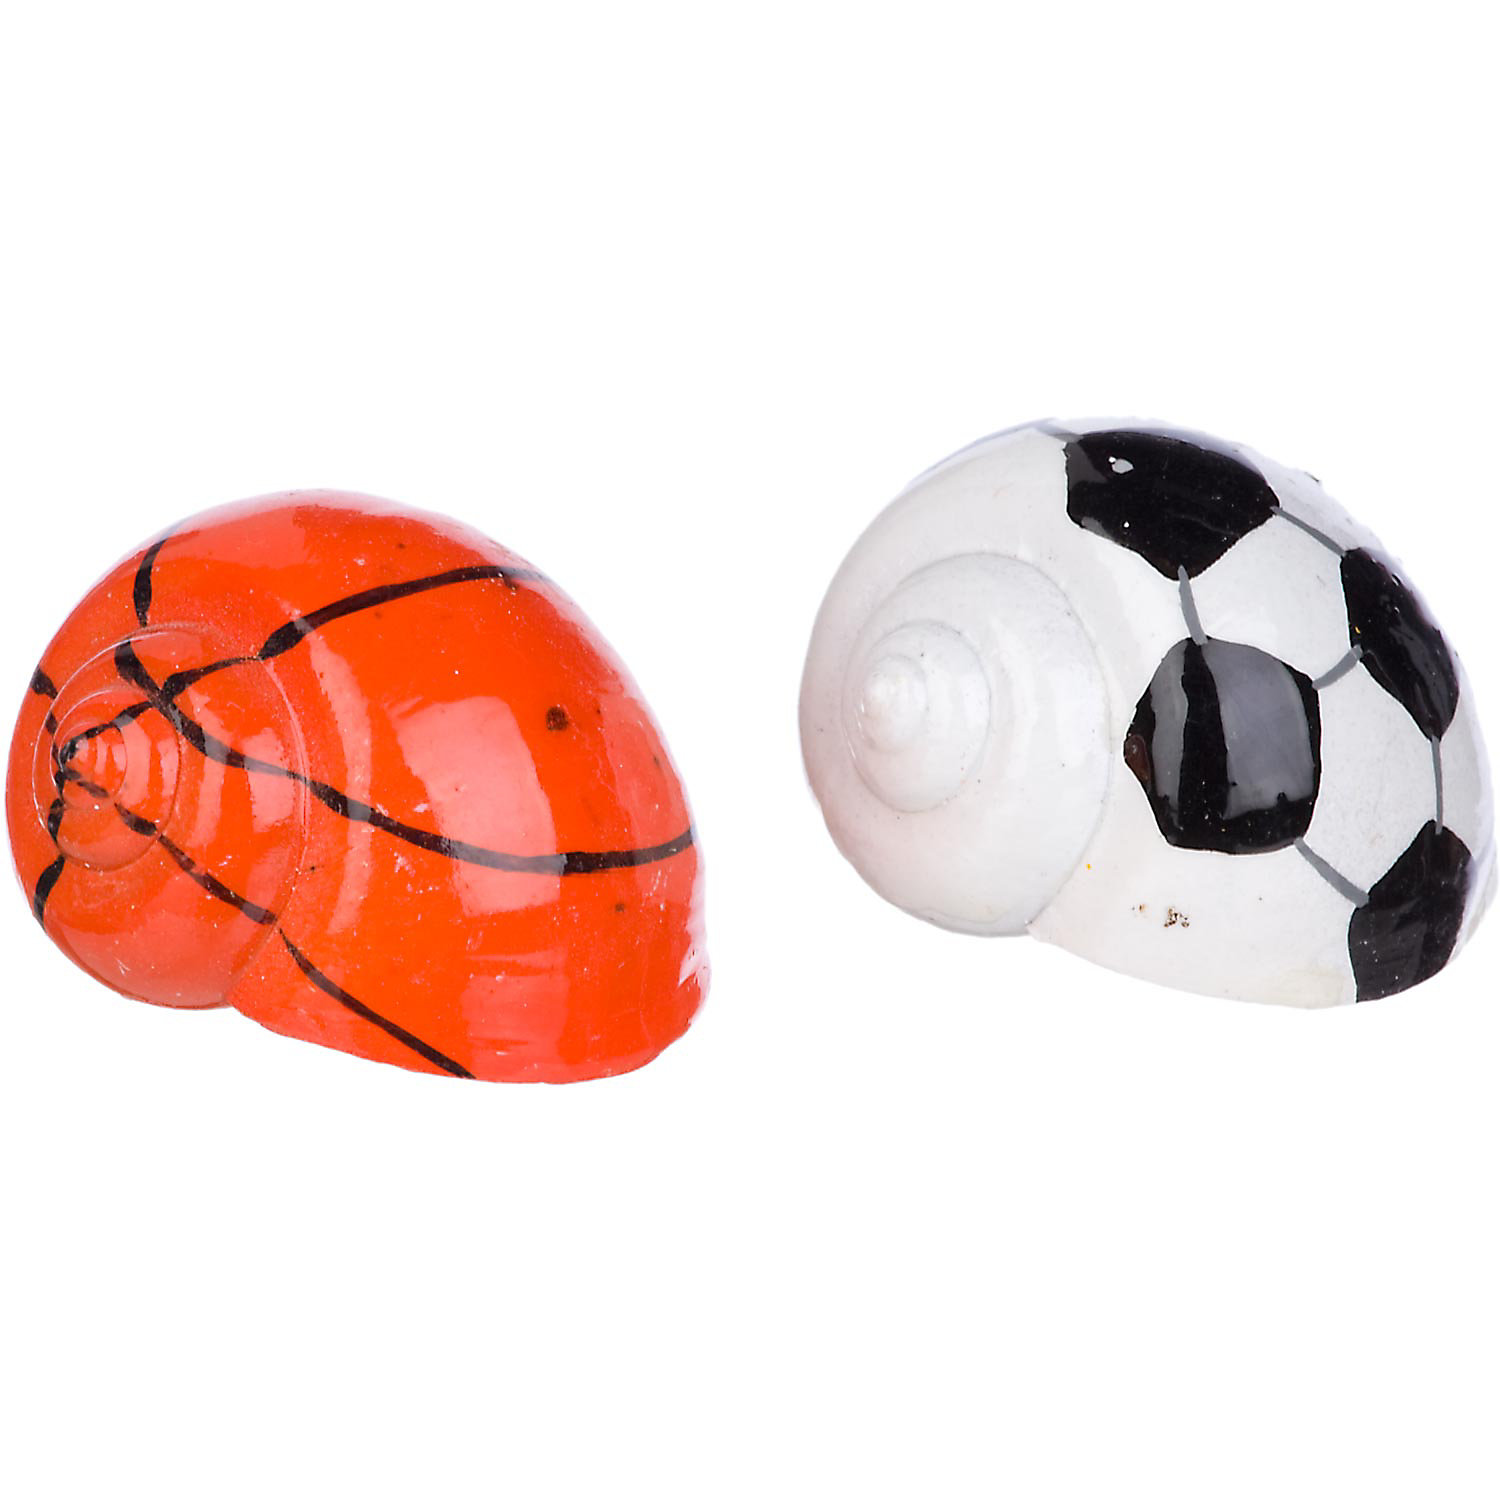 Image of Conceptual Creations Hermit Crab Sports Shells